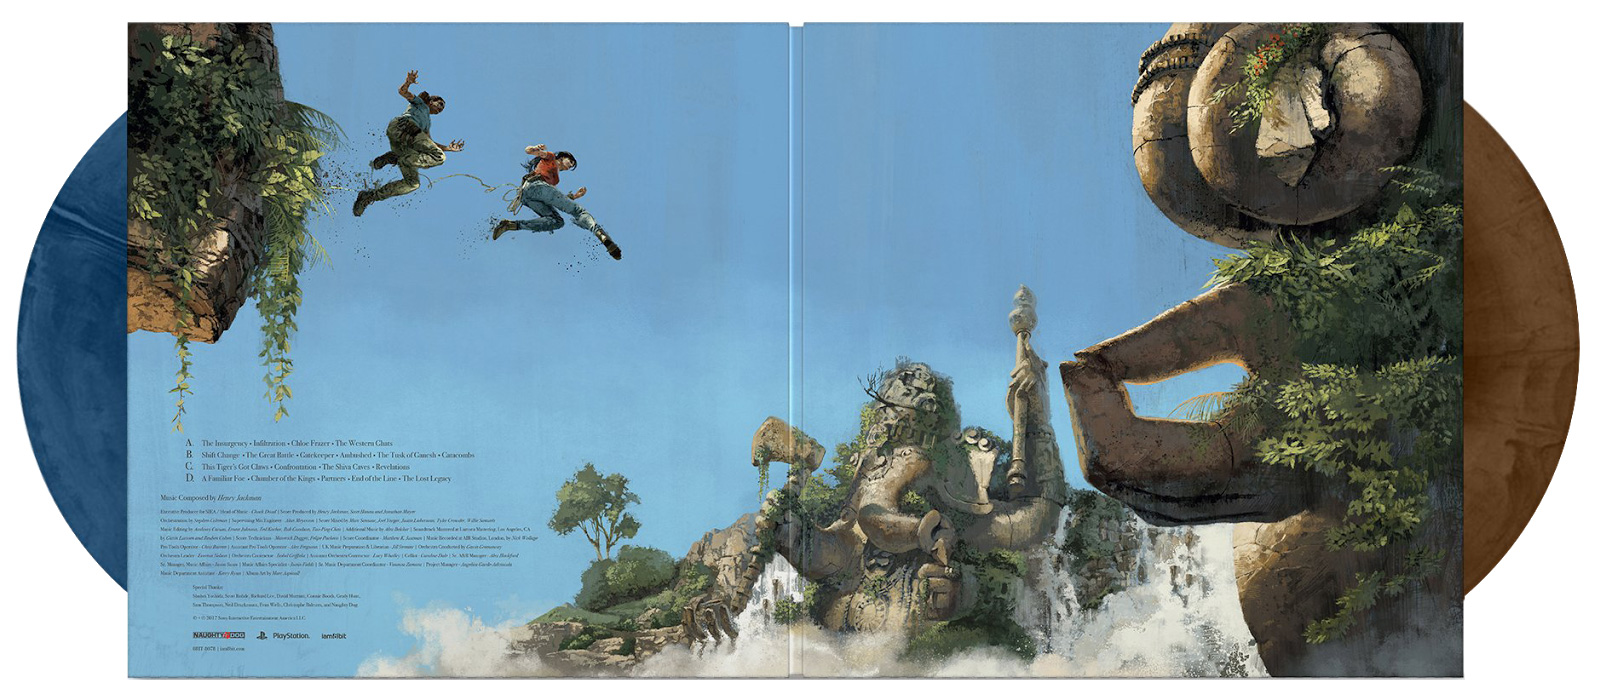 Uncharted The Lost Legacy Vinyl artwork for Iam8bit by Marc Aspinall